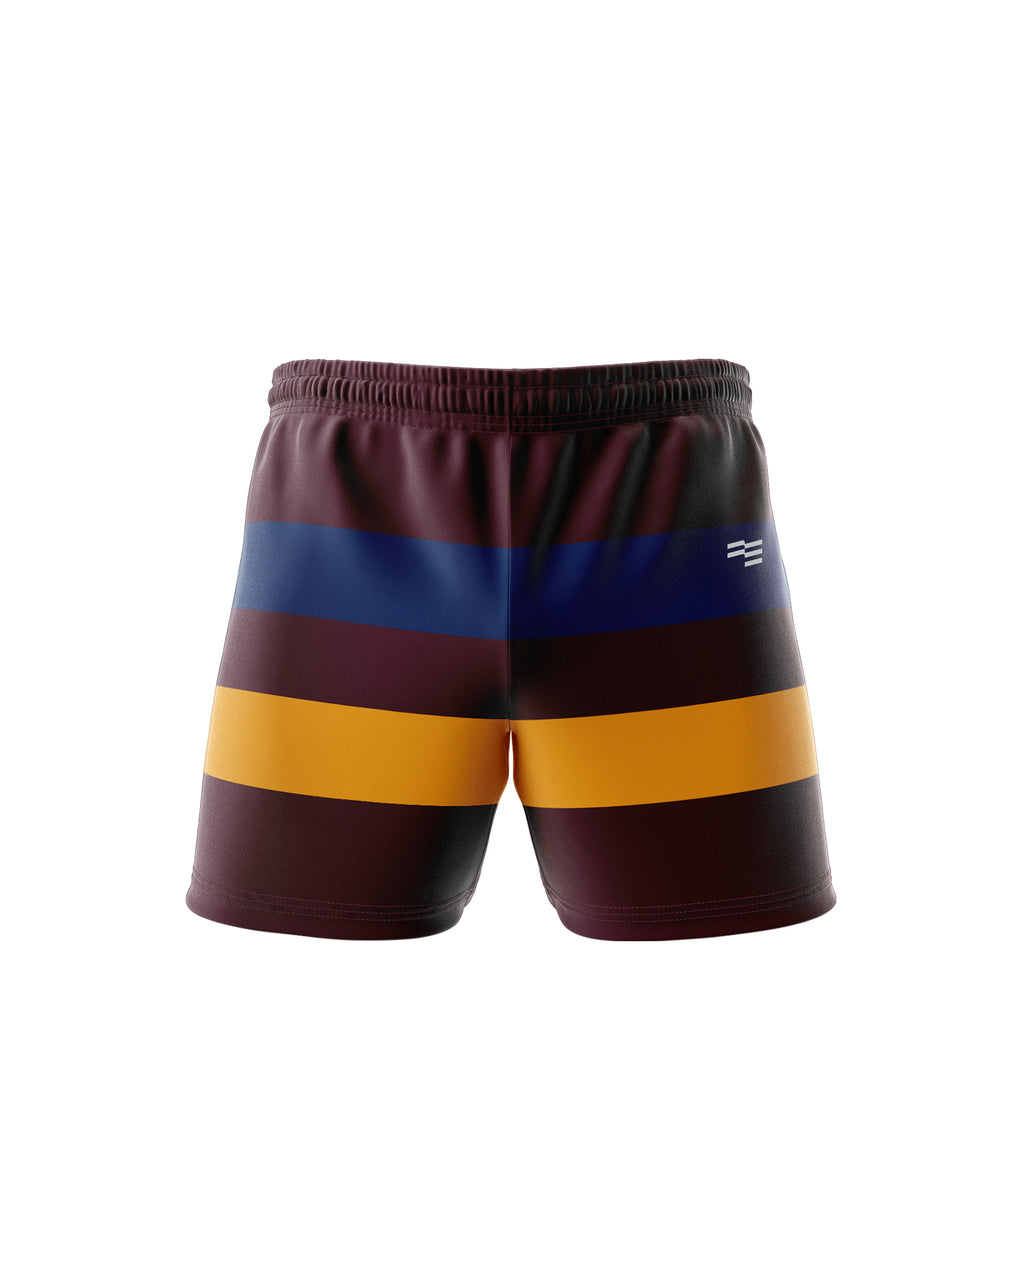 Grenadiers Aussie Rules Shorts - Mens